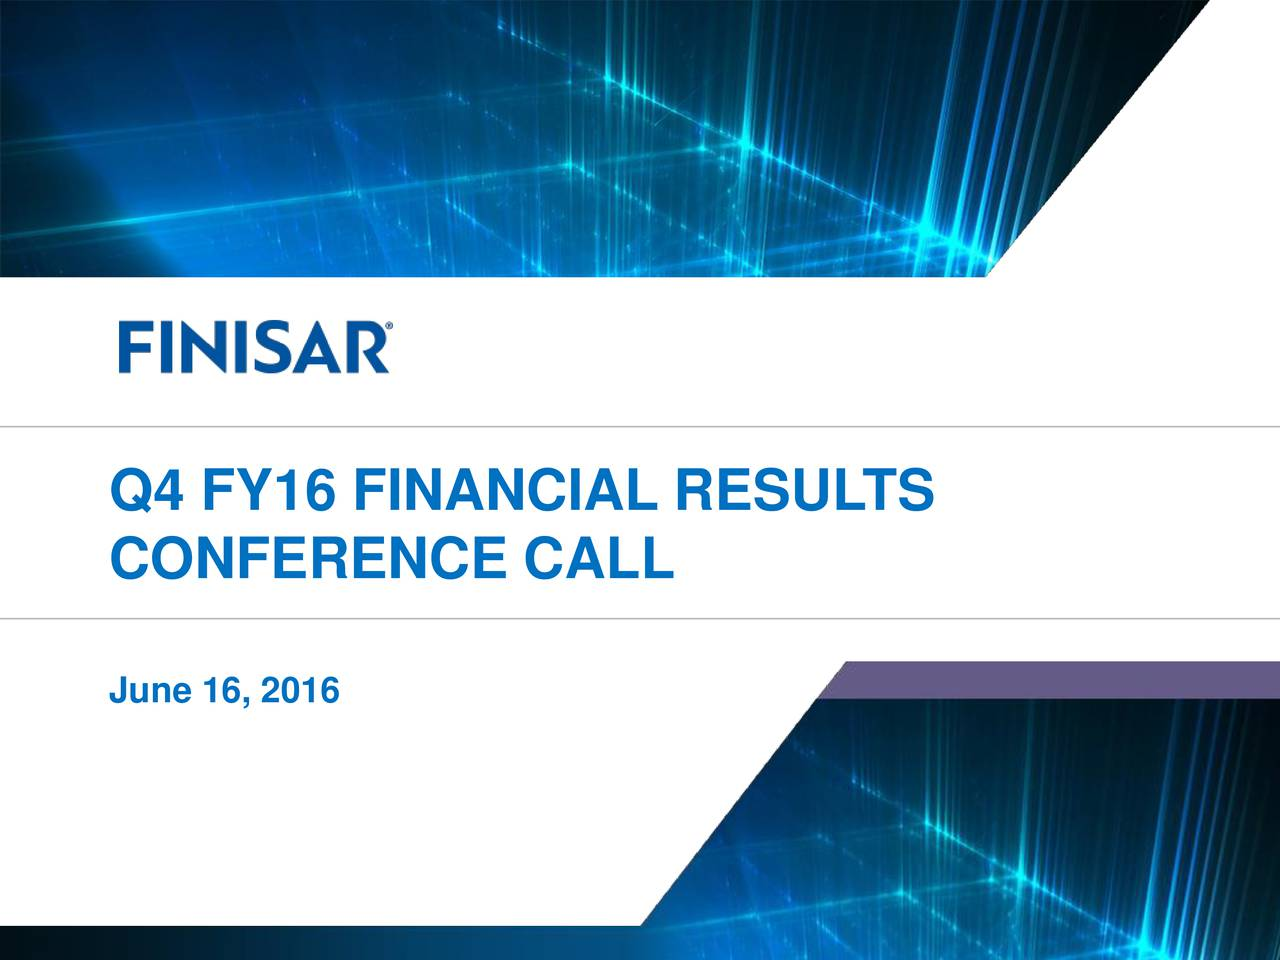 CONFERENCE CALL June 16, 2016 Finisar Corporation 1